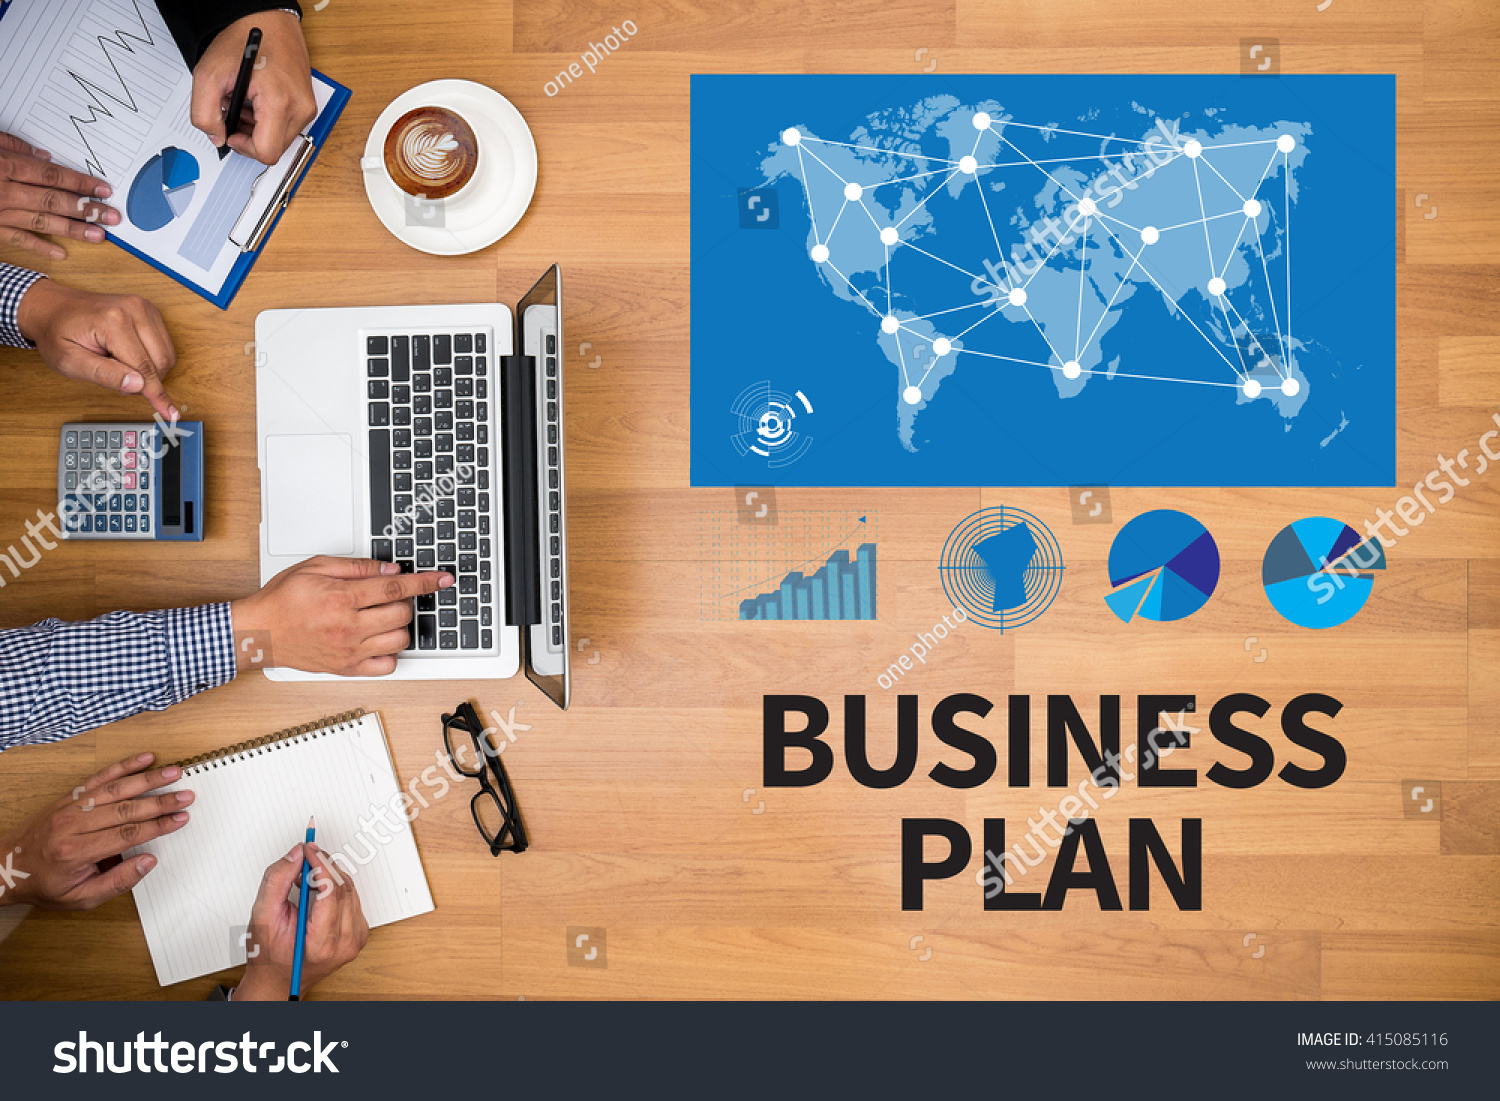 holding company business plan